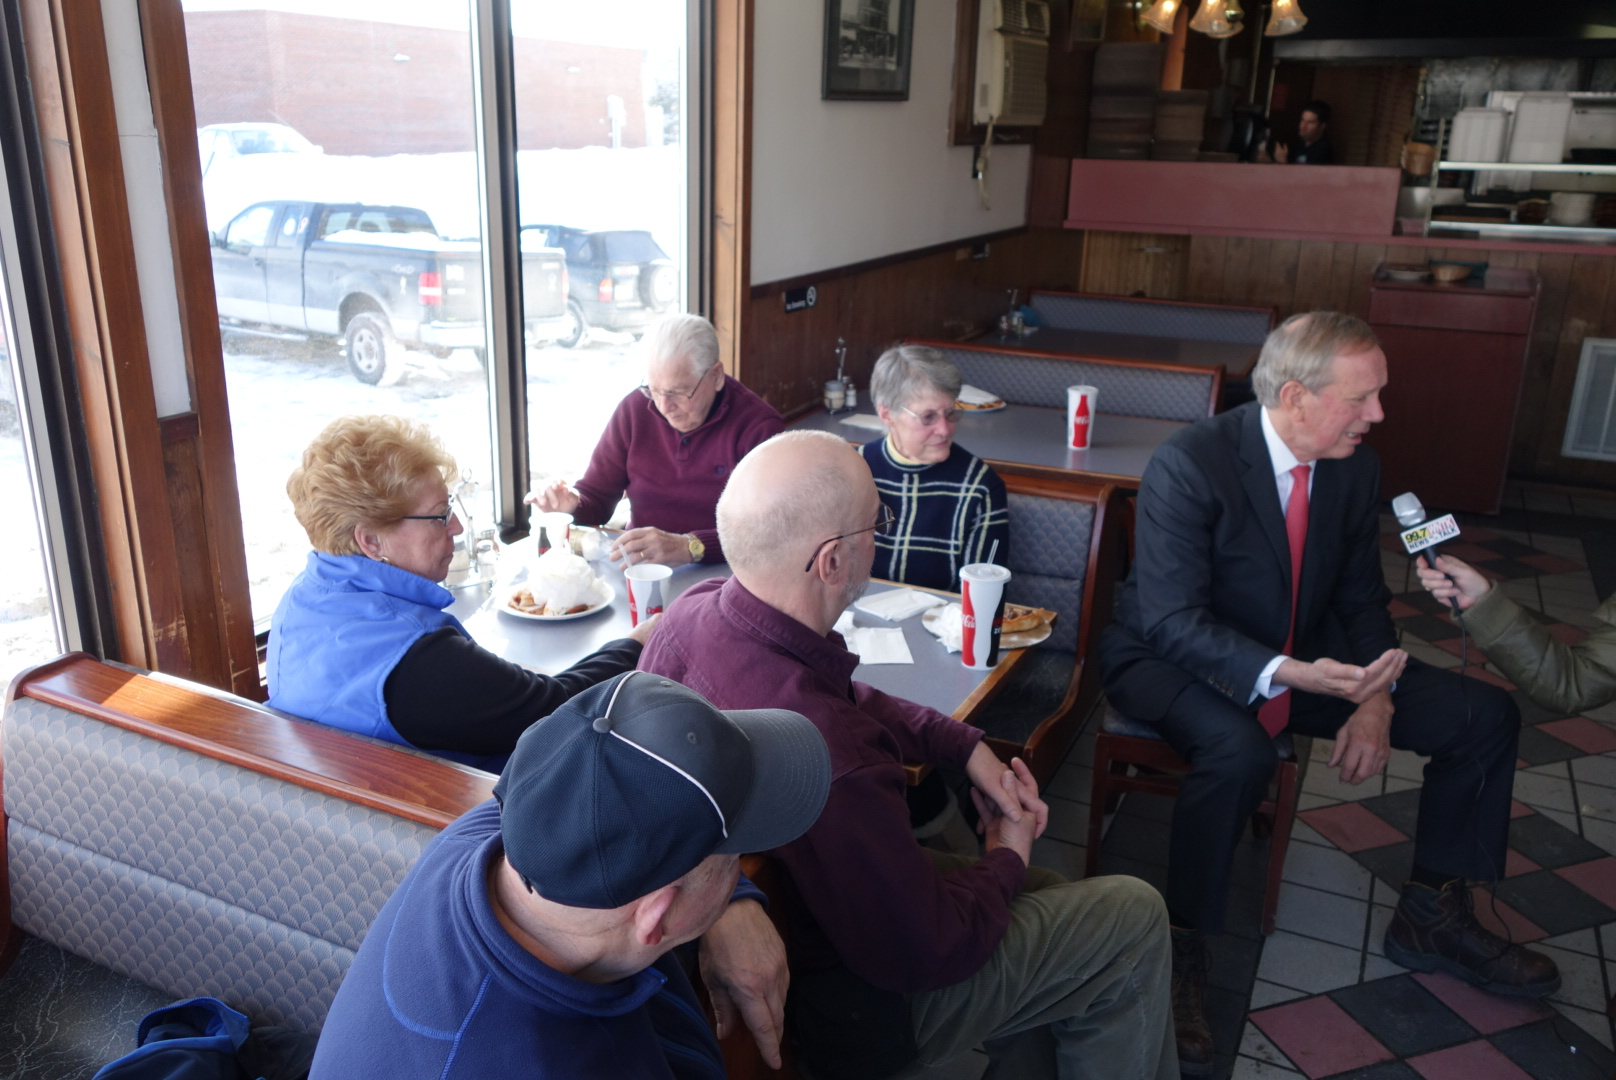 George Pataki at a pizzeria in Newport, NH.  2/3/15